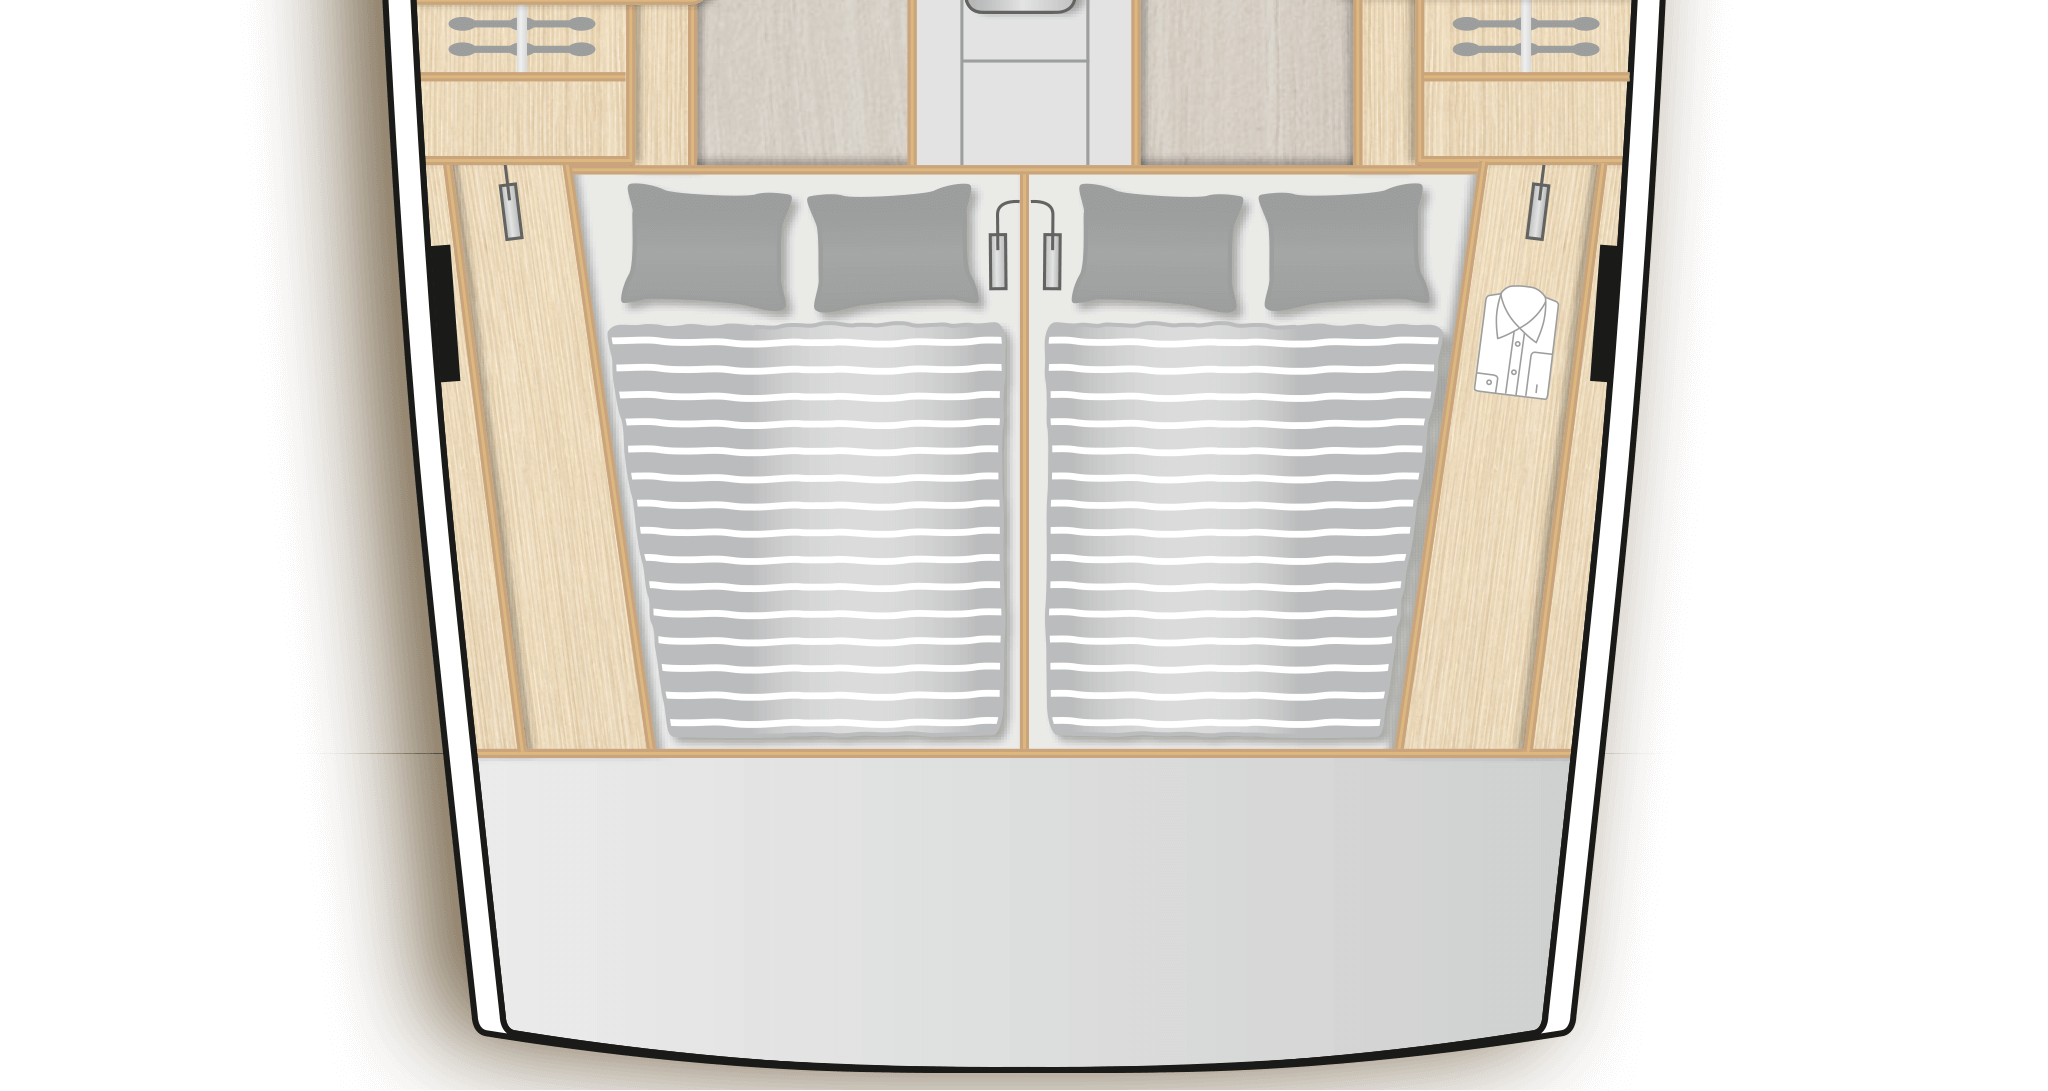 E2: 2 aft cabins with double berth, storage space and separate head